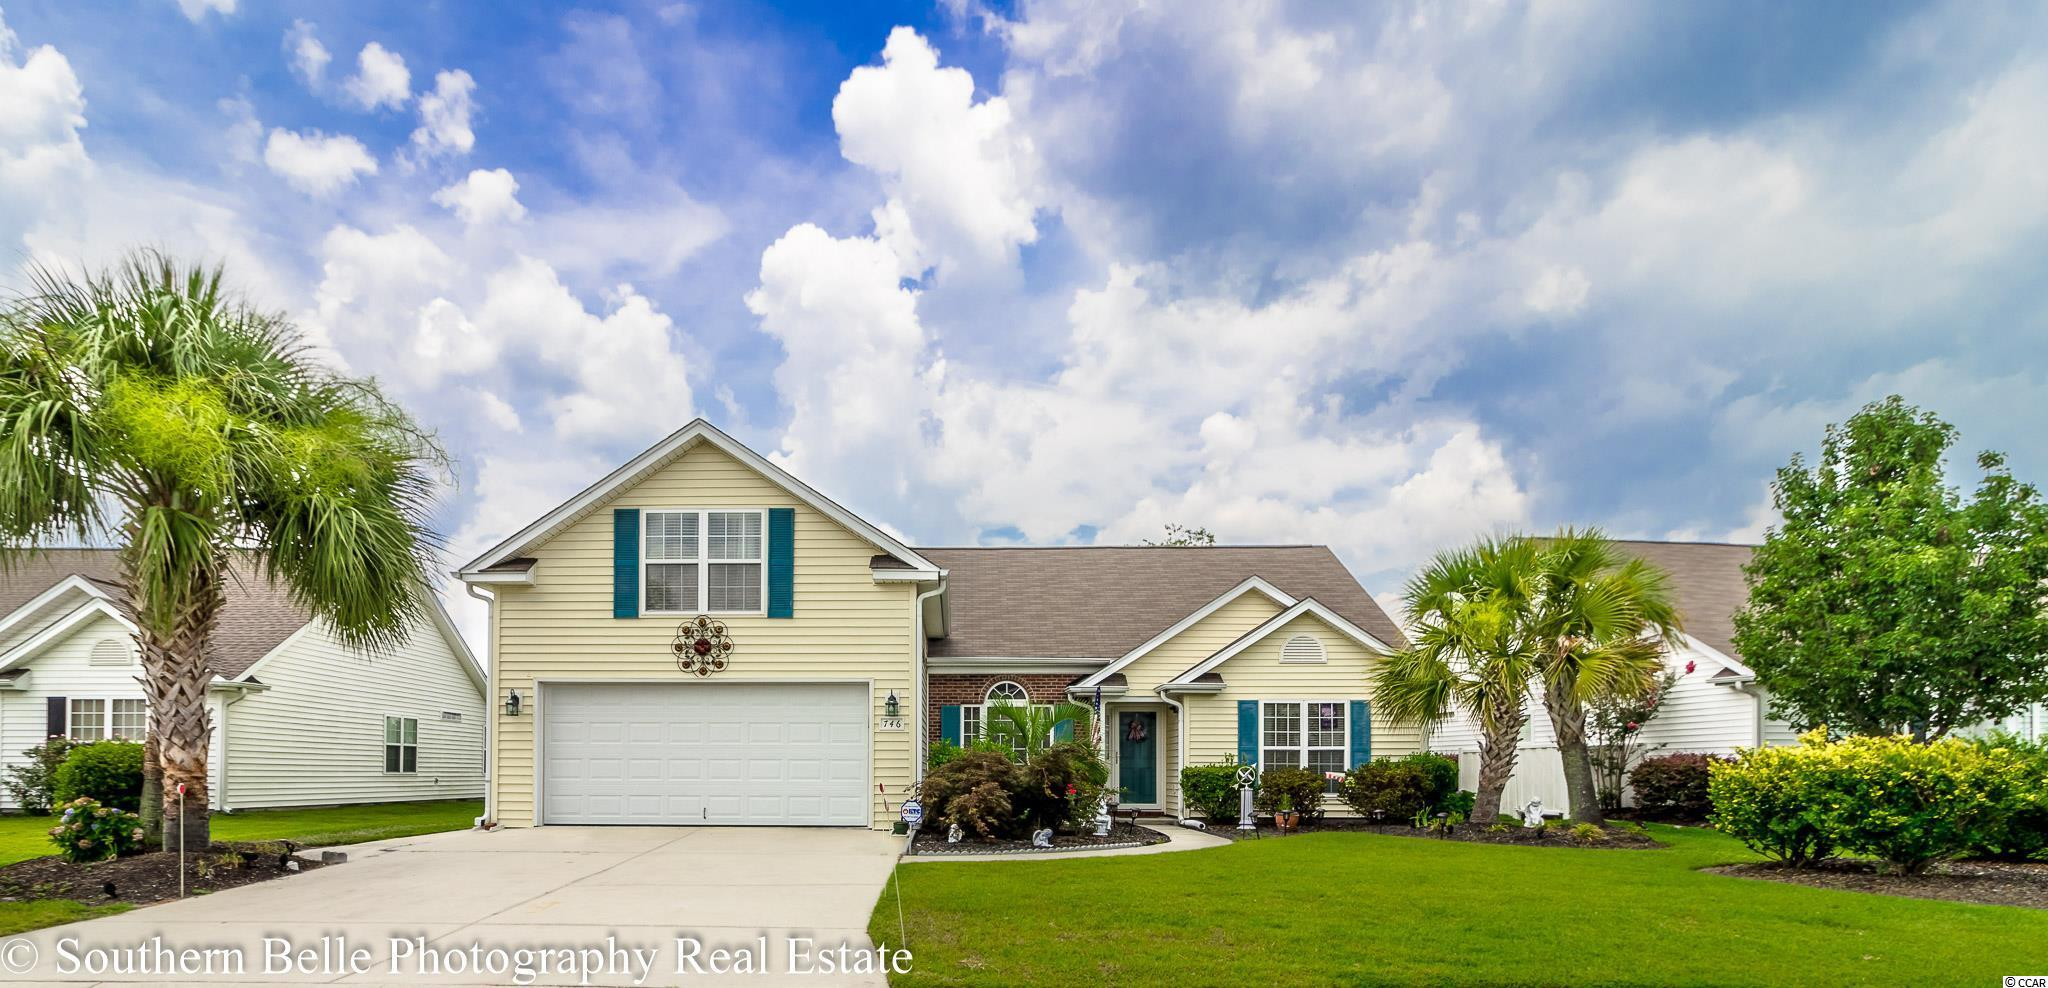 Location, Location, Location!!  This beautiful lakefront home is conveniently located in the prestigious Hillsborough neighborhood.  Located off of Highway 90 and approximately 1 mile away from the International Drive extension, this home is only a short drive to all of the great beaches, restaurants, dining, and shopping that Myrtle Beach, downtown Conway, and North Myrtle Beach have to offer.  Come home to this amazing 4 bedroom/2 bath home with approximately 2300 heated square feet!  This home features a kitchen that has been updated with gorgeous granite countertops and brand new appliances!  The formal dining room is also gorgeous with its cathedral ceilings.  With a spacious Master Bedroom on the first floor and 2 additional guest rooms on the first floor, this home is perfect for families of all sizes.  No expense was spared in the building of this lovely home.  There are many upgrades throughout including new carpet, granite countertops, toilets, appliances, etc.  Enjoy the beautiful views of the community lake from every room or from the relaxing screened porch.  The charming wooded Hillsborough neighborhood also has a large community pool, playground, and clubhouse for all of your entertaining needs. Don't miss your chance to make this house your dream home!